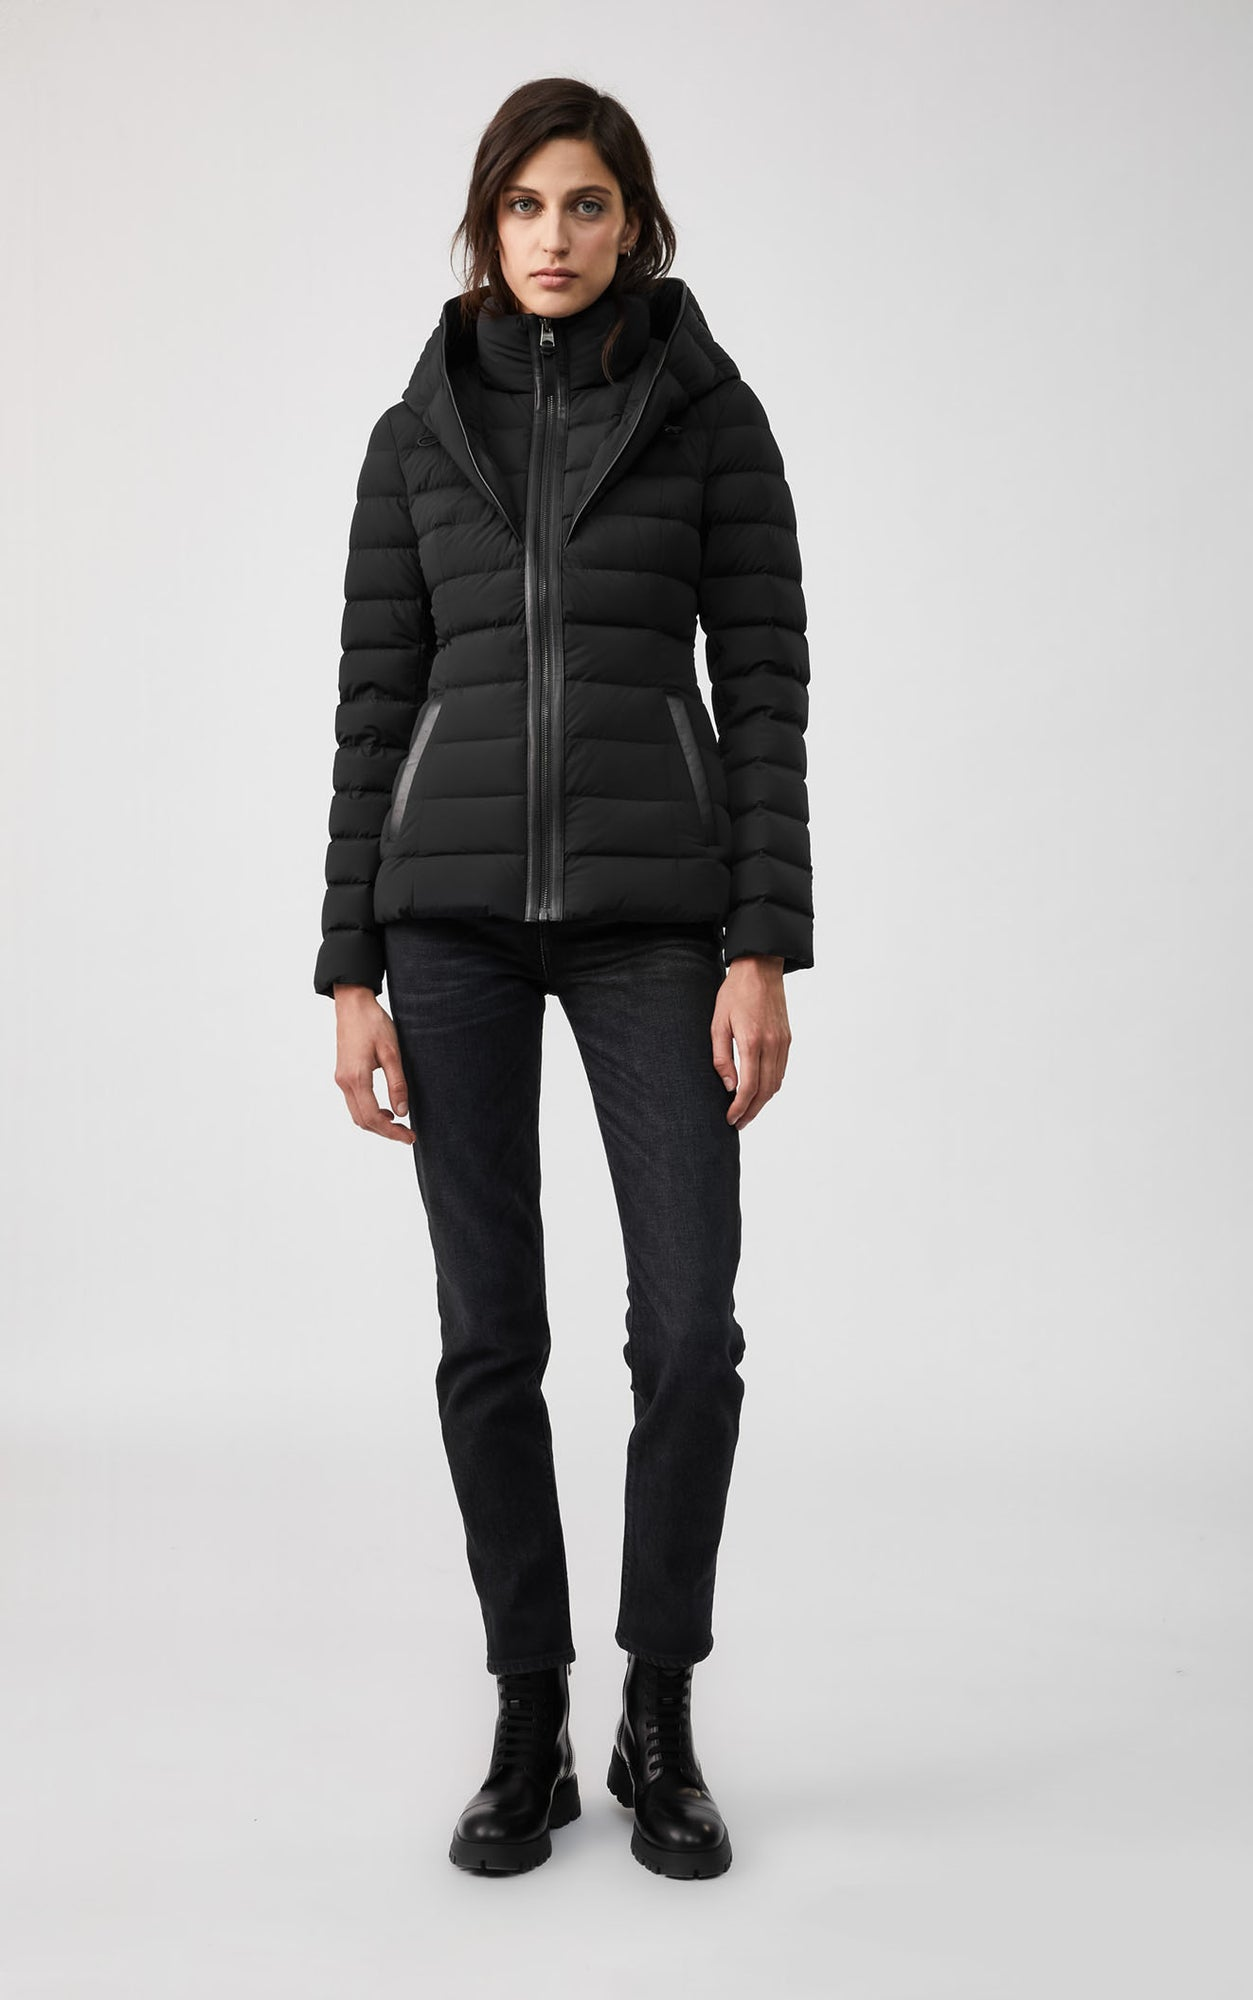 MACKAGE ANDREA LIGHTWEIGHT DOWN WOMEN'S JACKET ANDREA-R-BL